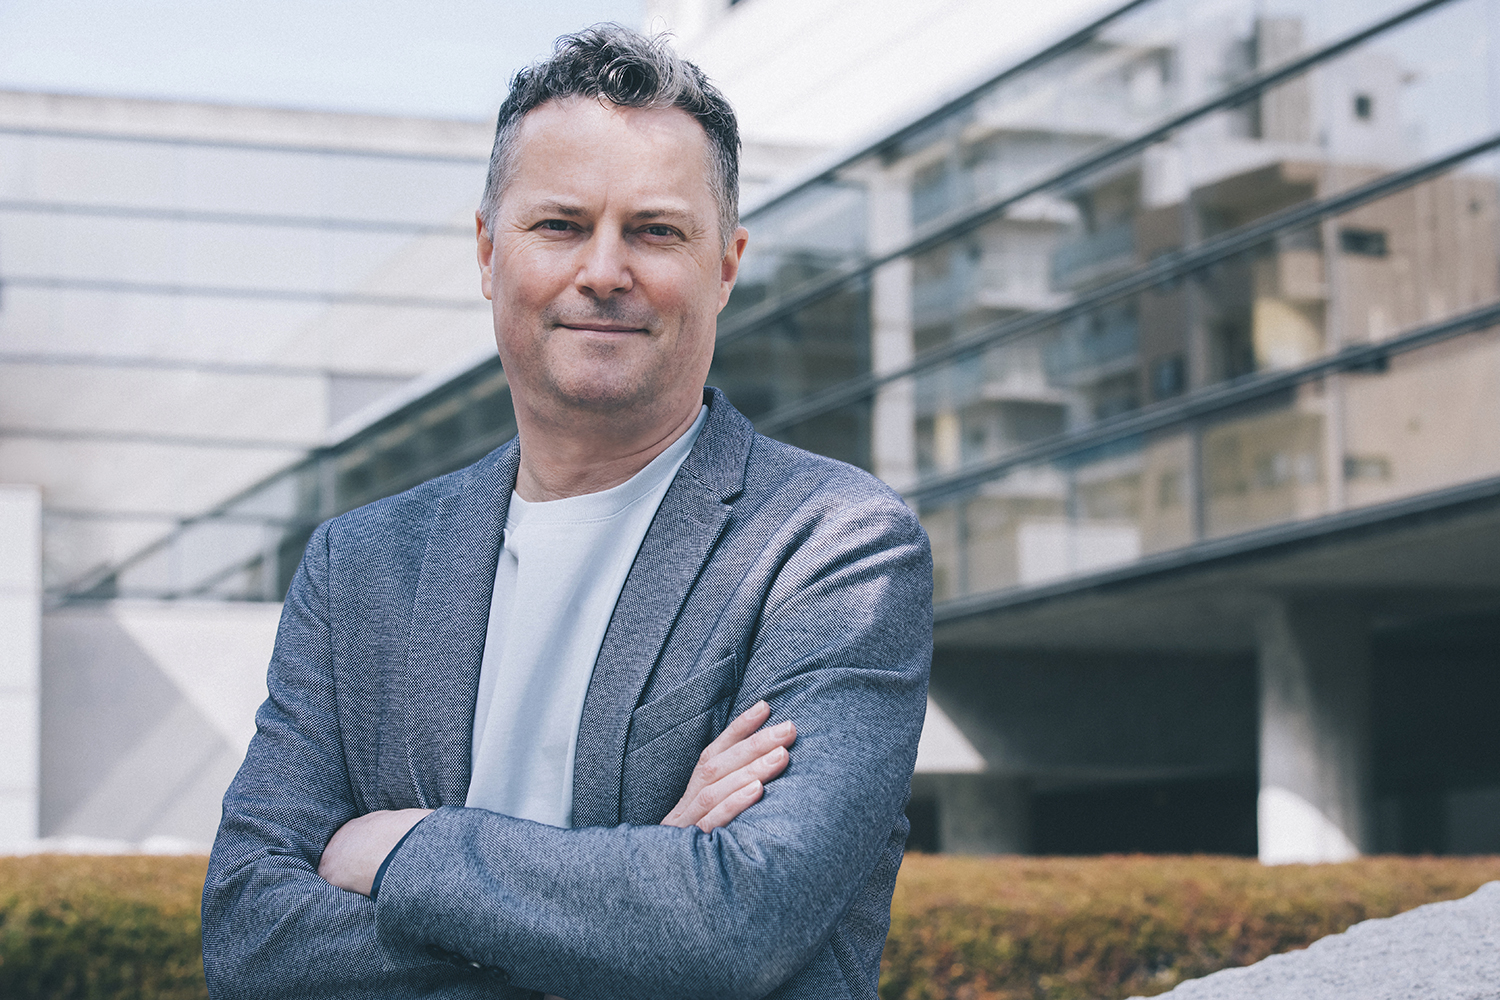 Agency Stalwart Campbell Hanley Takes the Reins as Managing Director for Weber Shandwick Japan